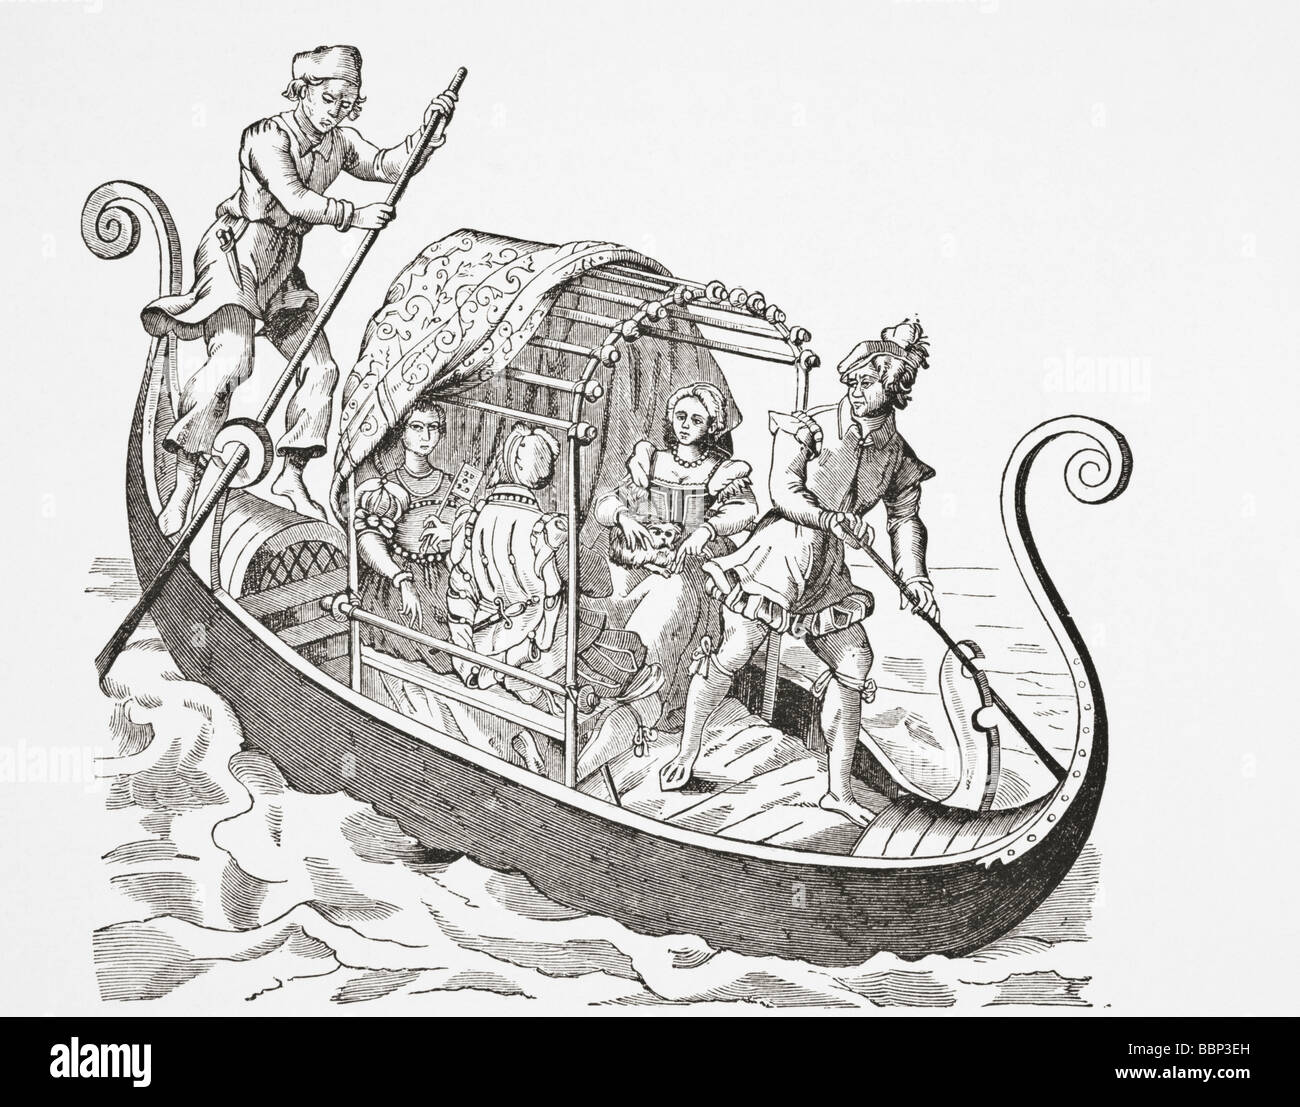 Venetian Gondola. From the Grand Procession of the Doge of Venice attributed to Jost Amman and  published Frankfurt - Stock Image